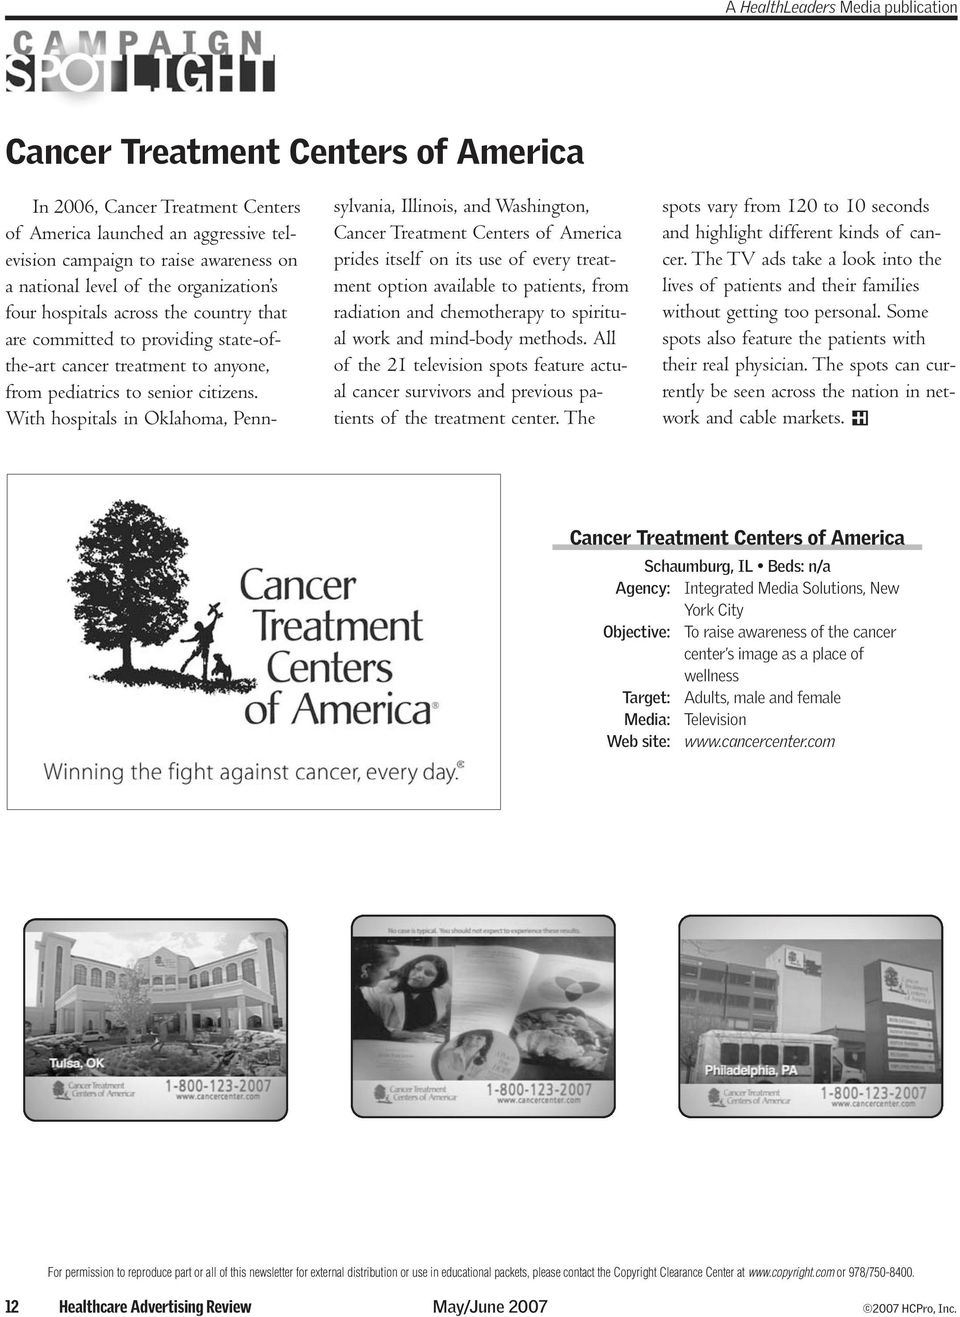 With hospitals in Oklahoma, Pennsylvania, Illinois, and Washington, Cancer Treatment Centers of America prides itself on its use of every treatment option available to patients, from radiation and